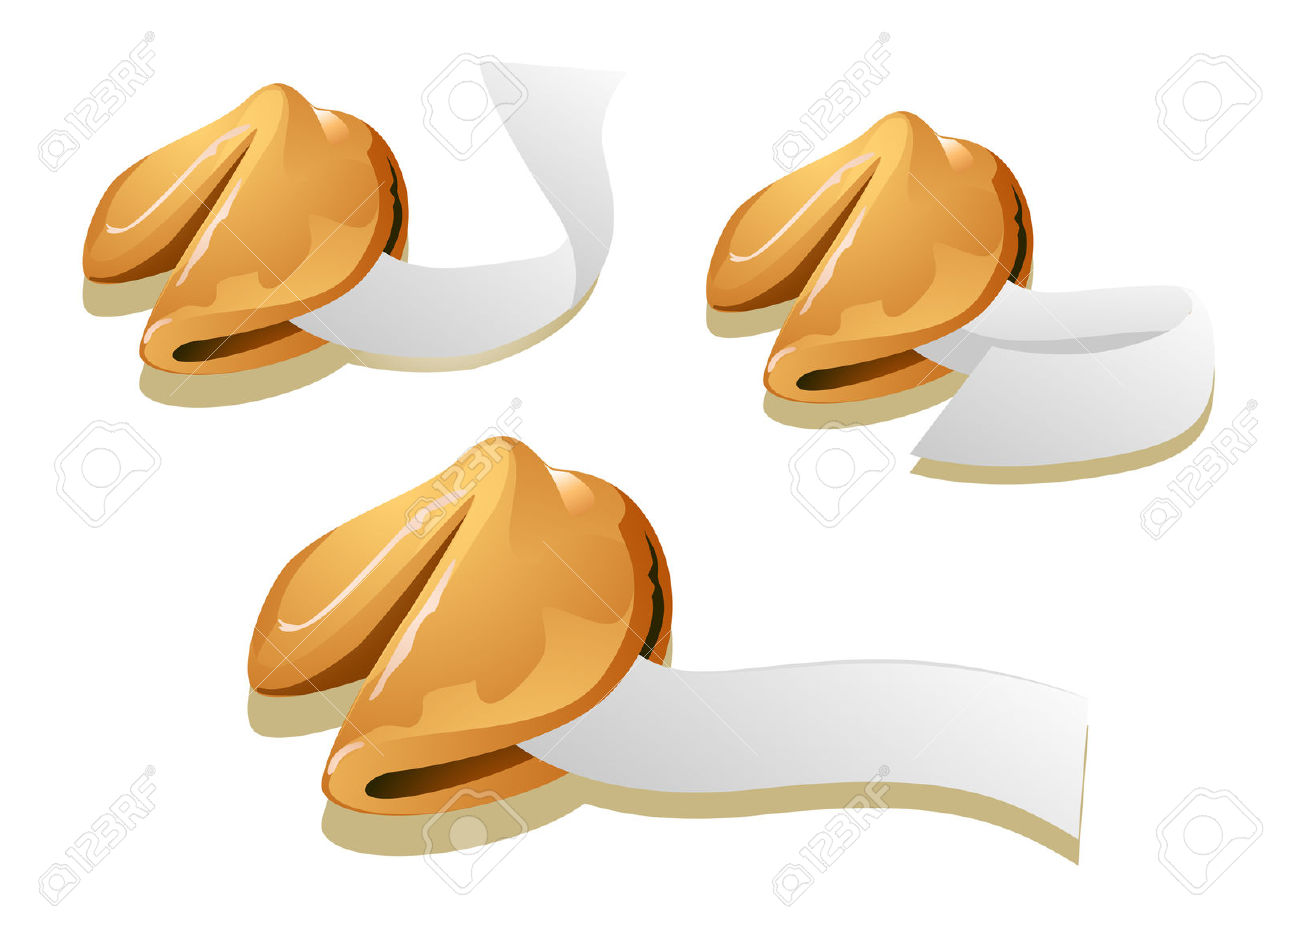 Fortune Cookies Stock Vector - 4615098